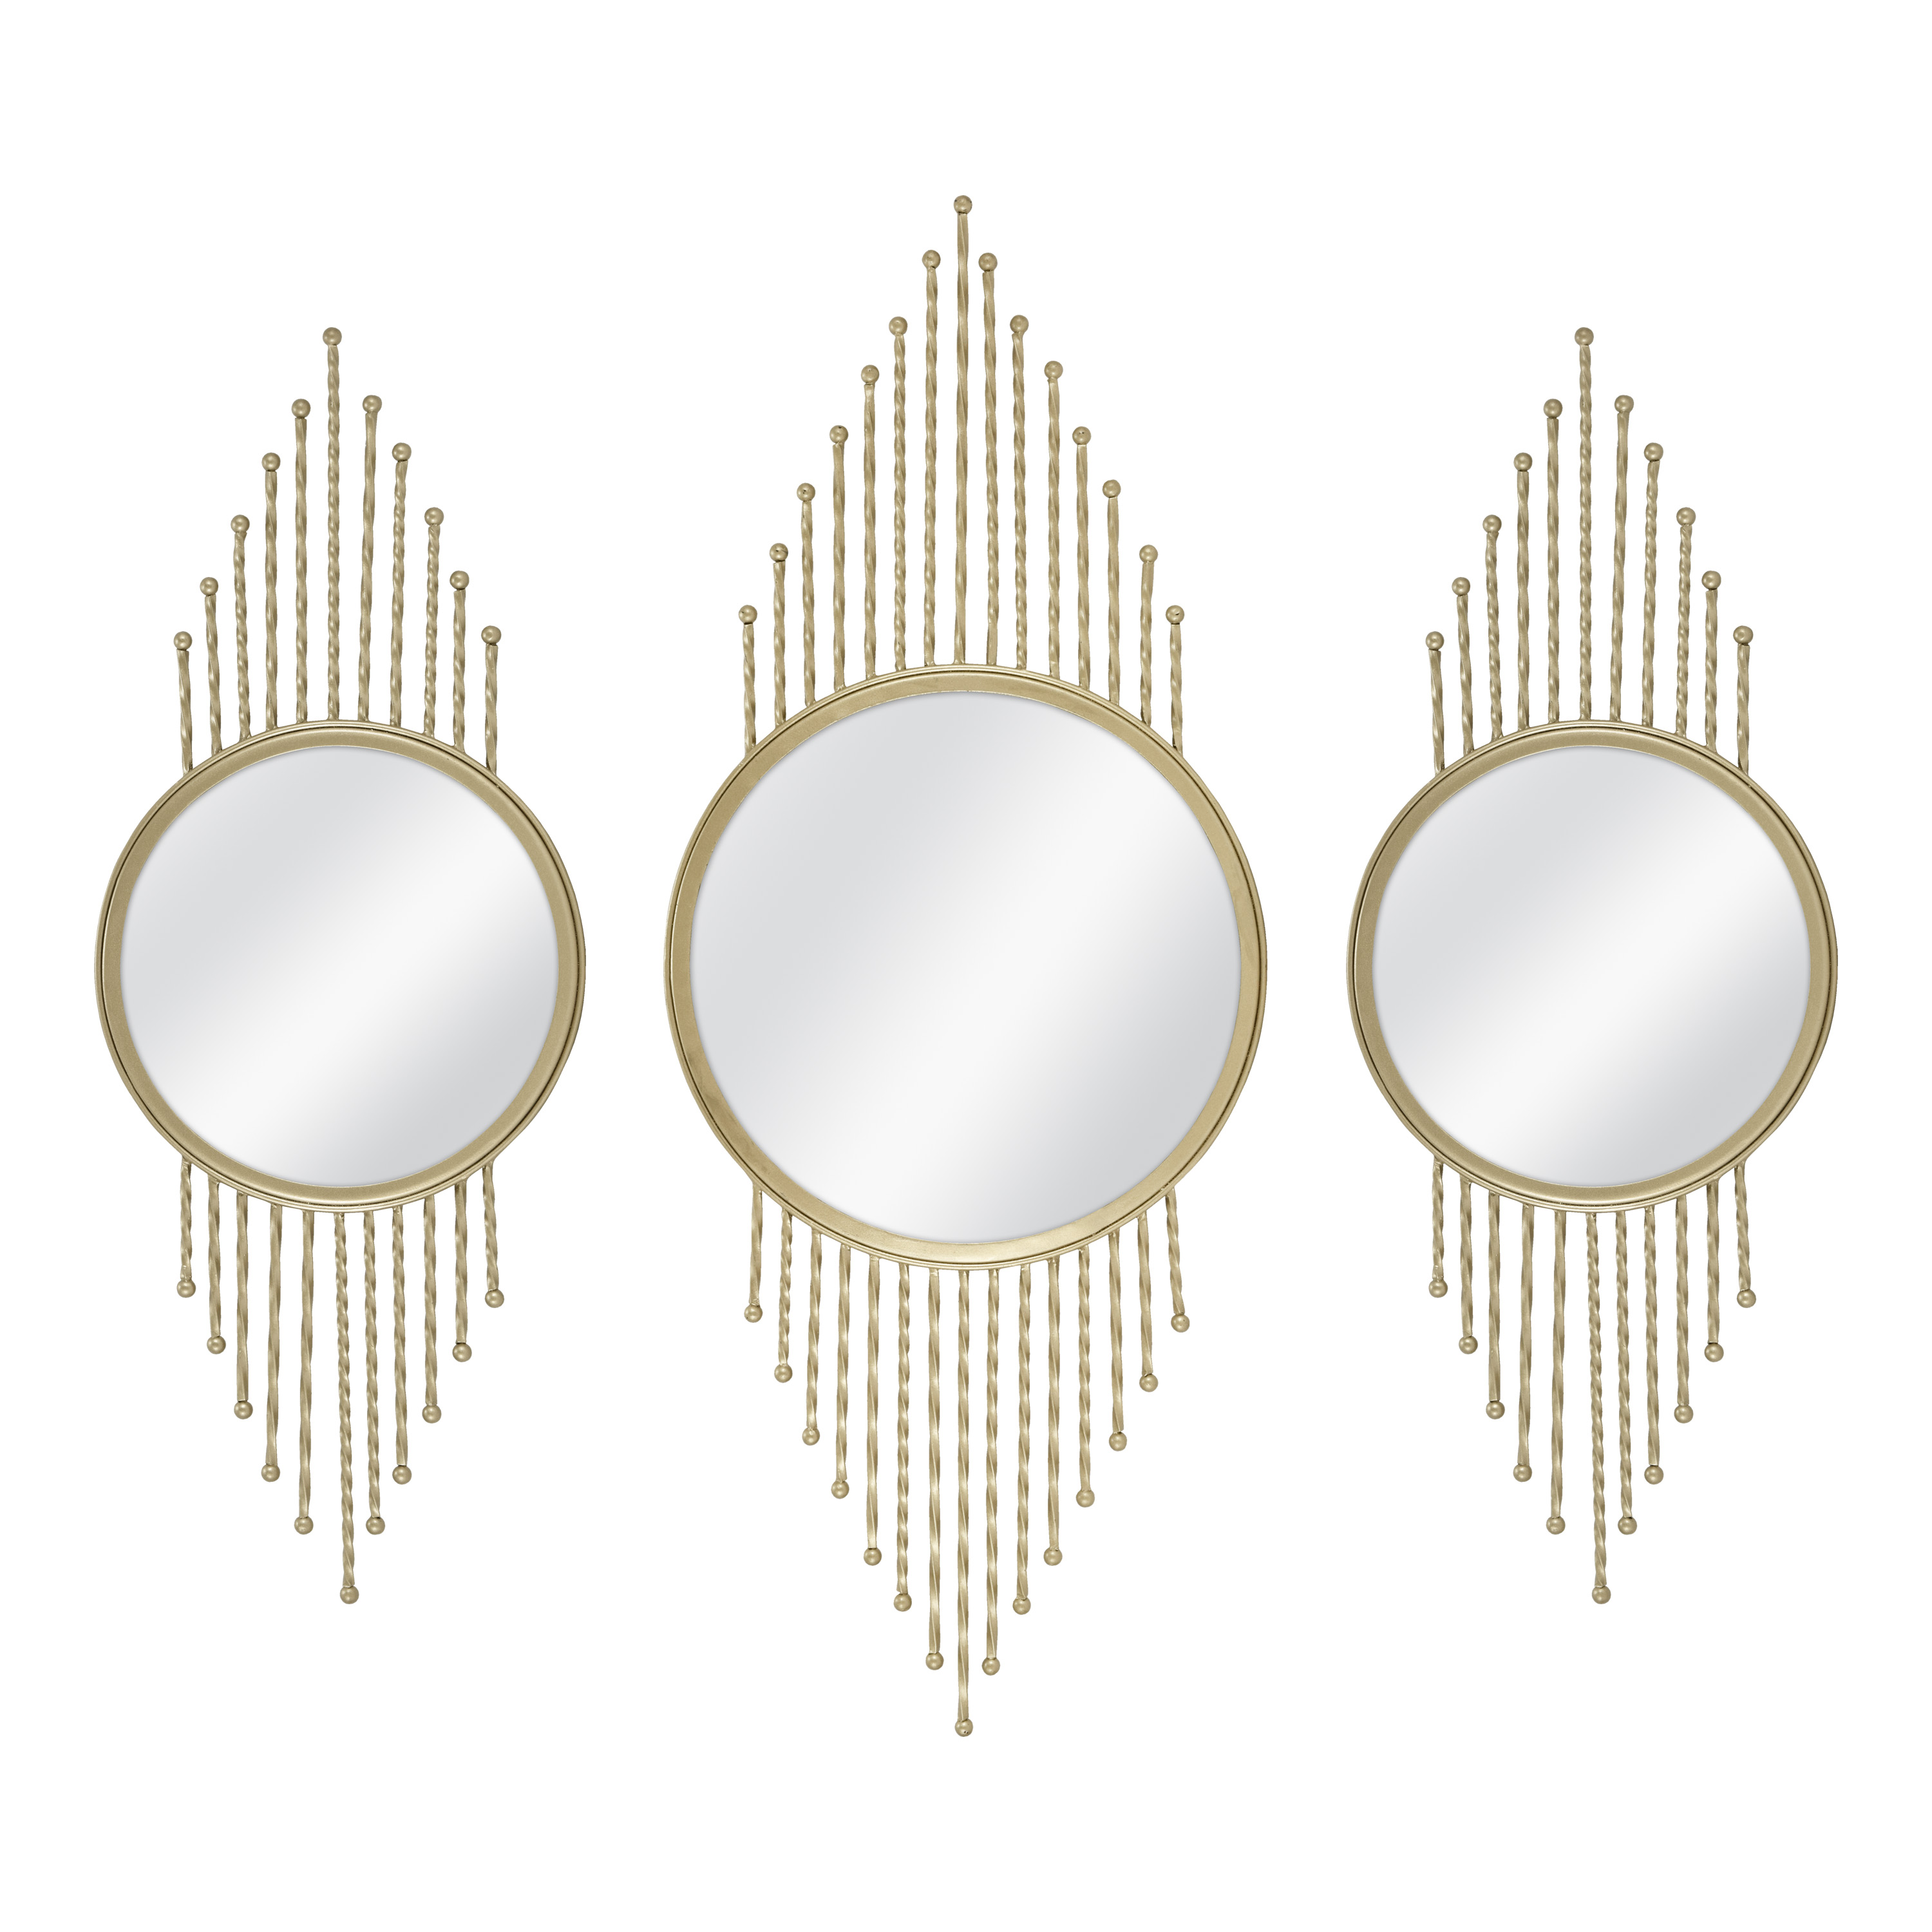 Stratton Home Decor Set Of 3 Gold Mirror Burst Wall Decor Walmart Com Walmart Com